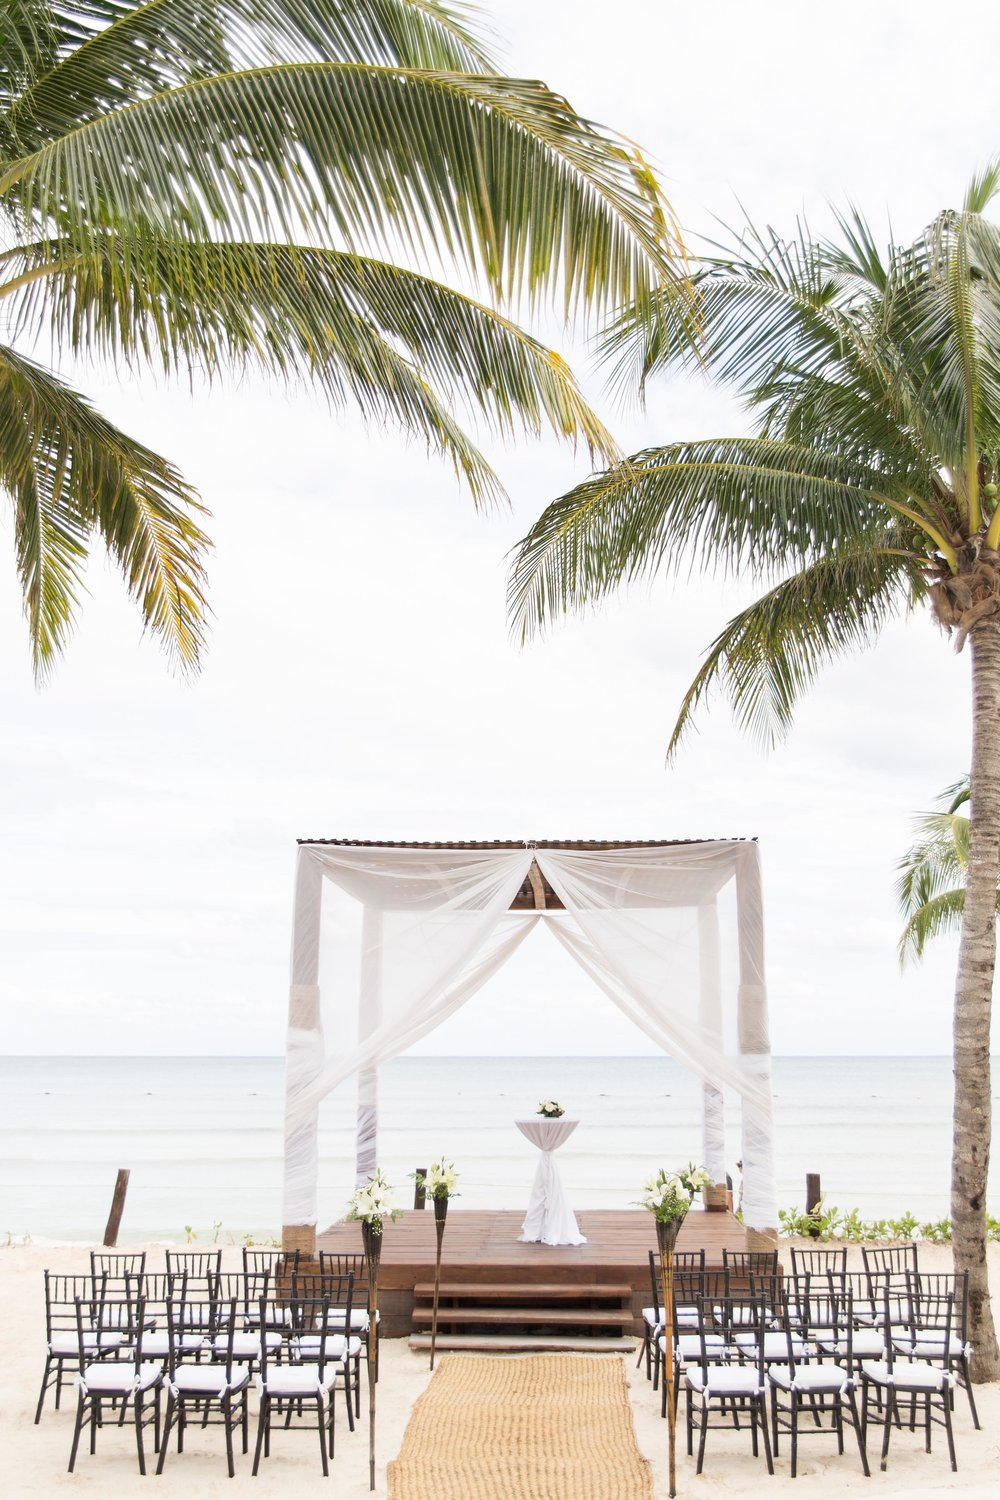 Destination wedding ceremony on the beach